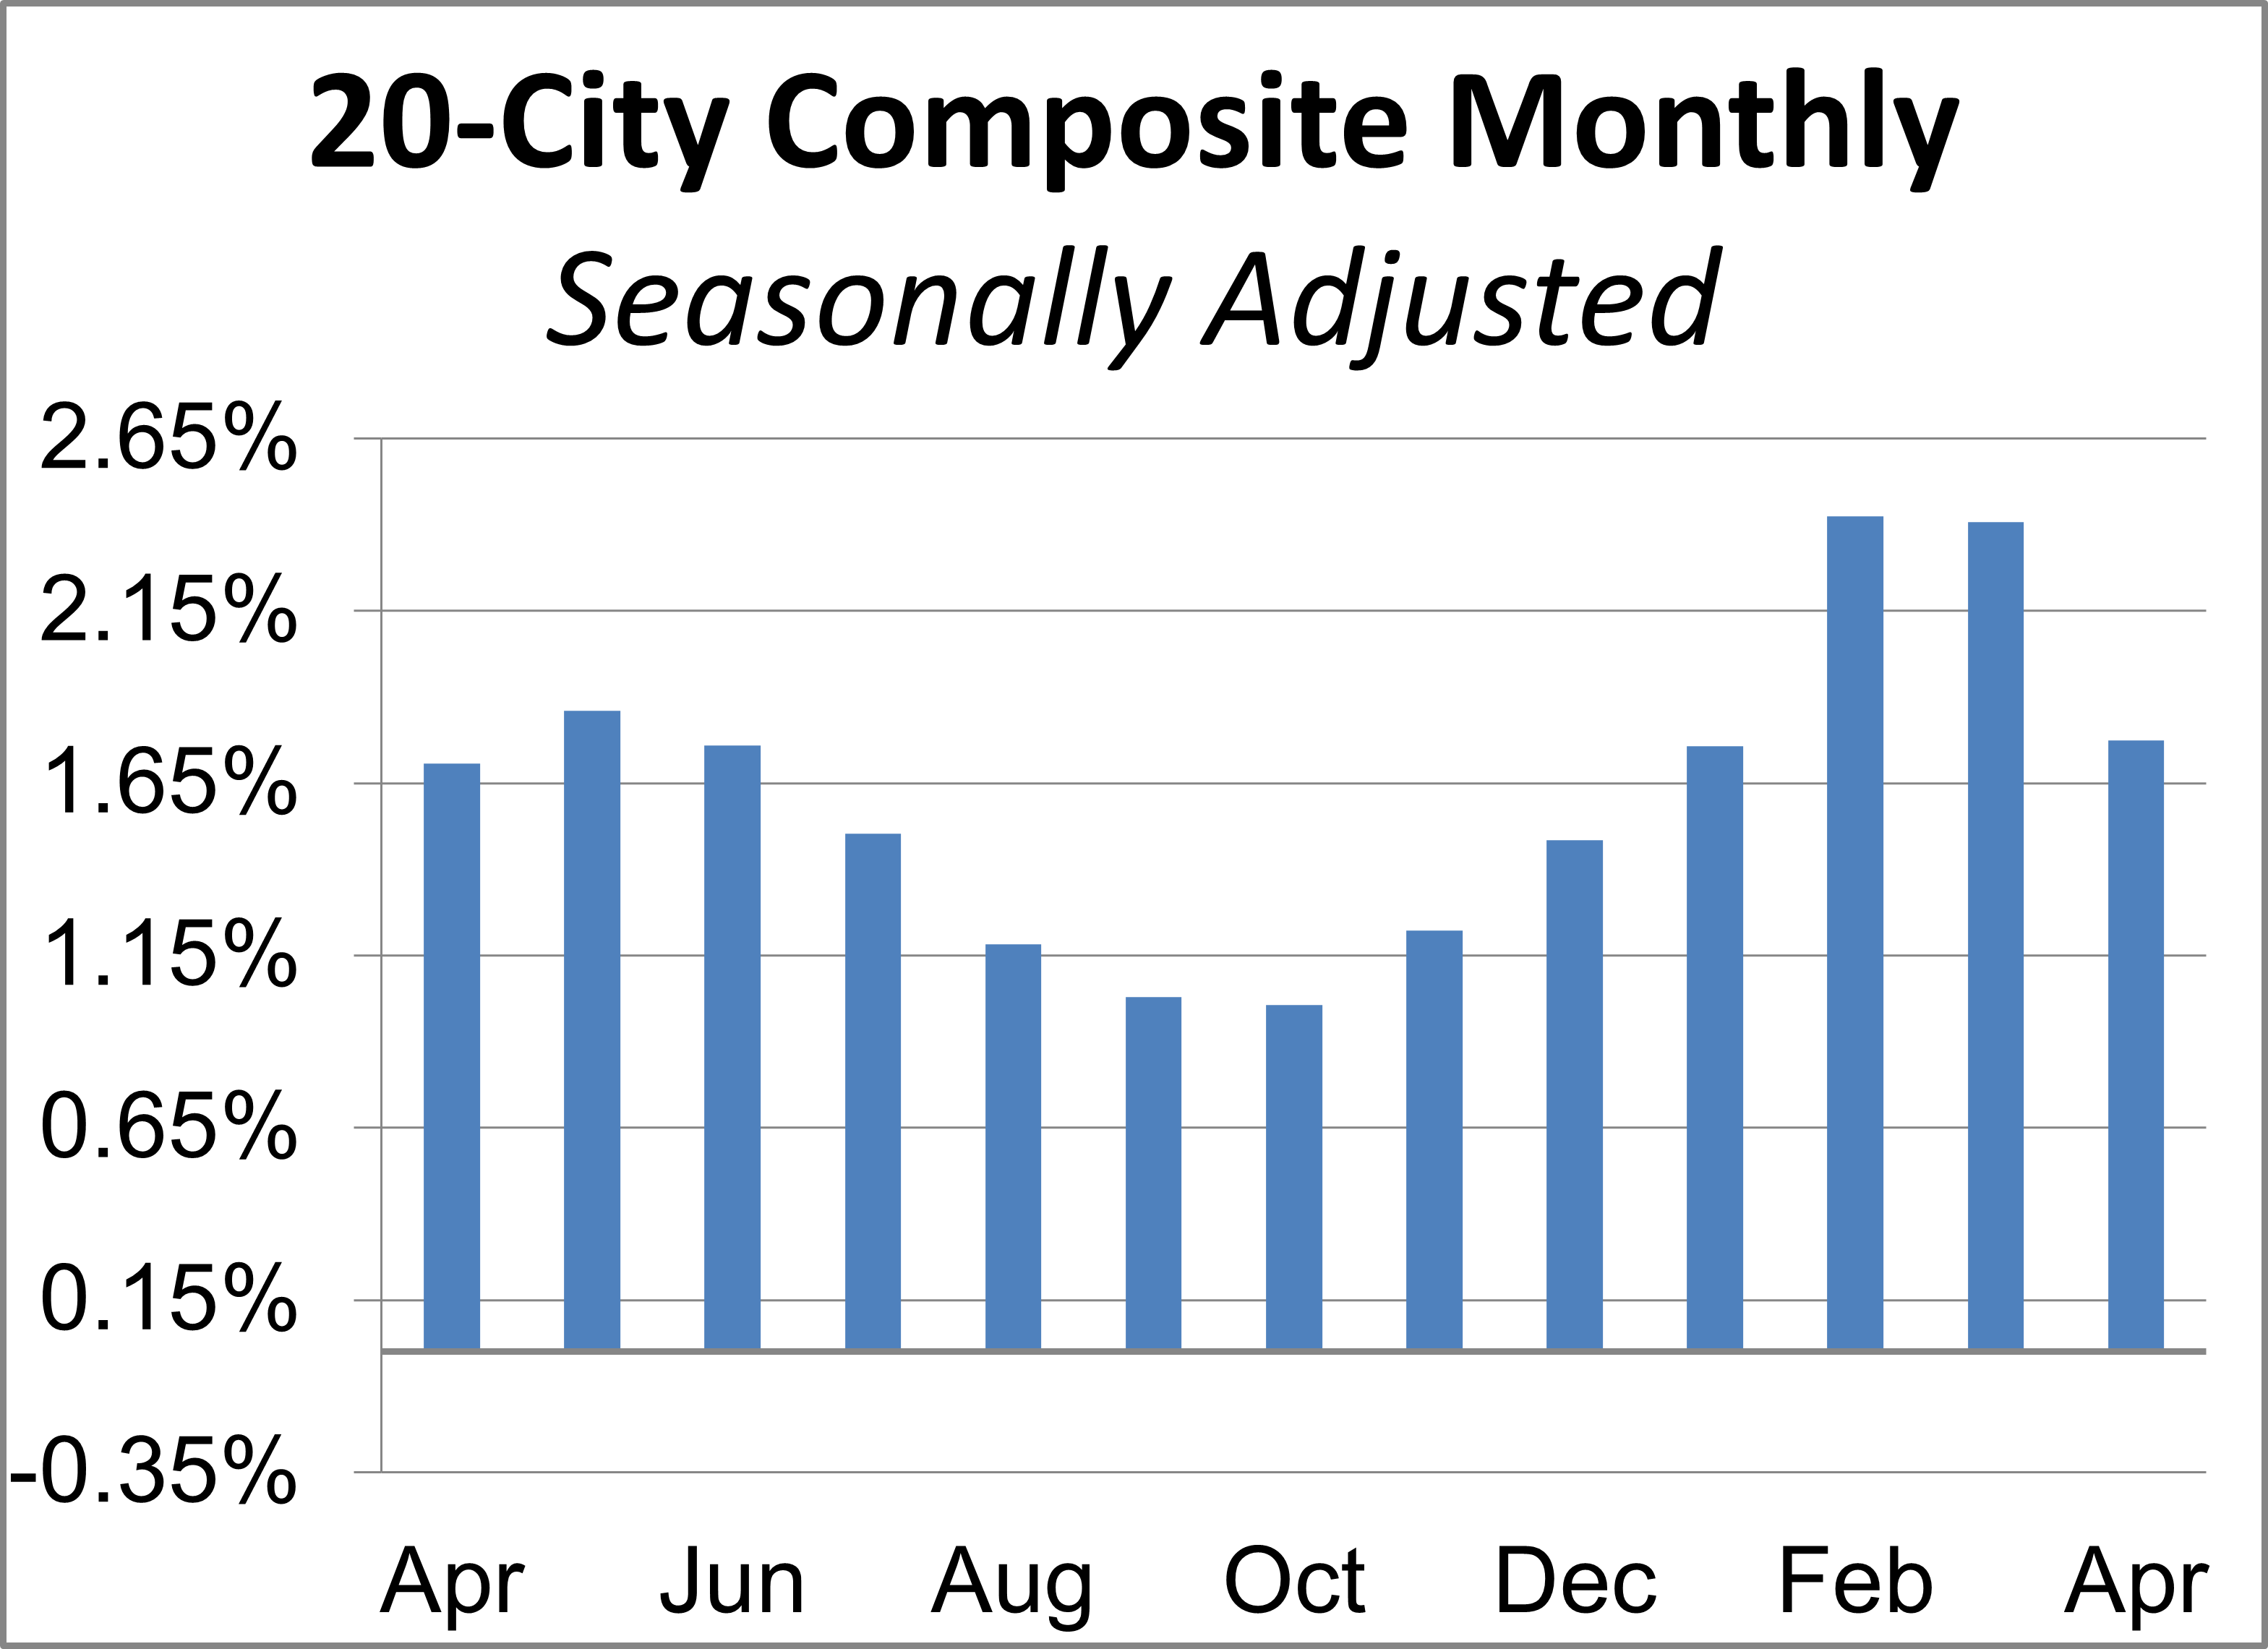 20-City Month-over-Month